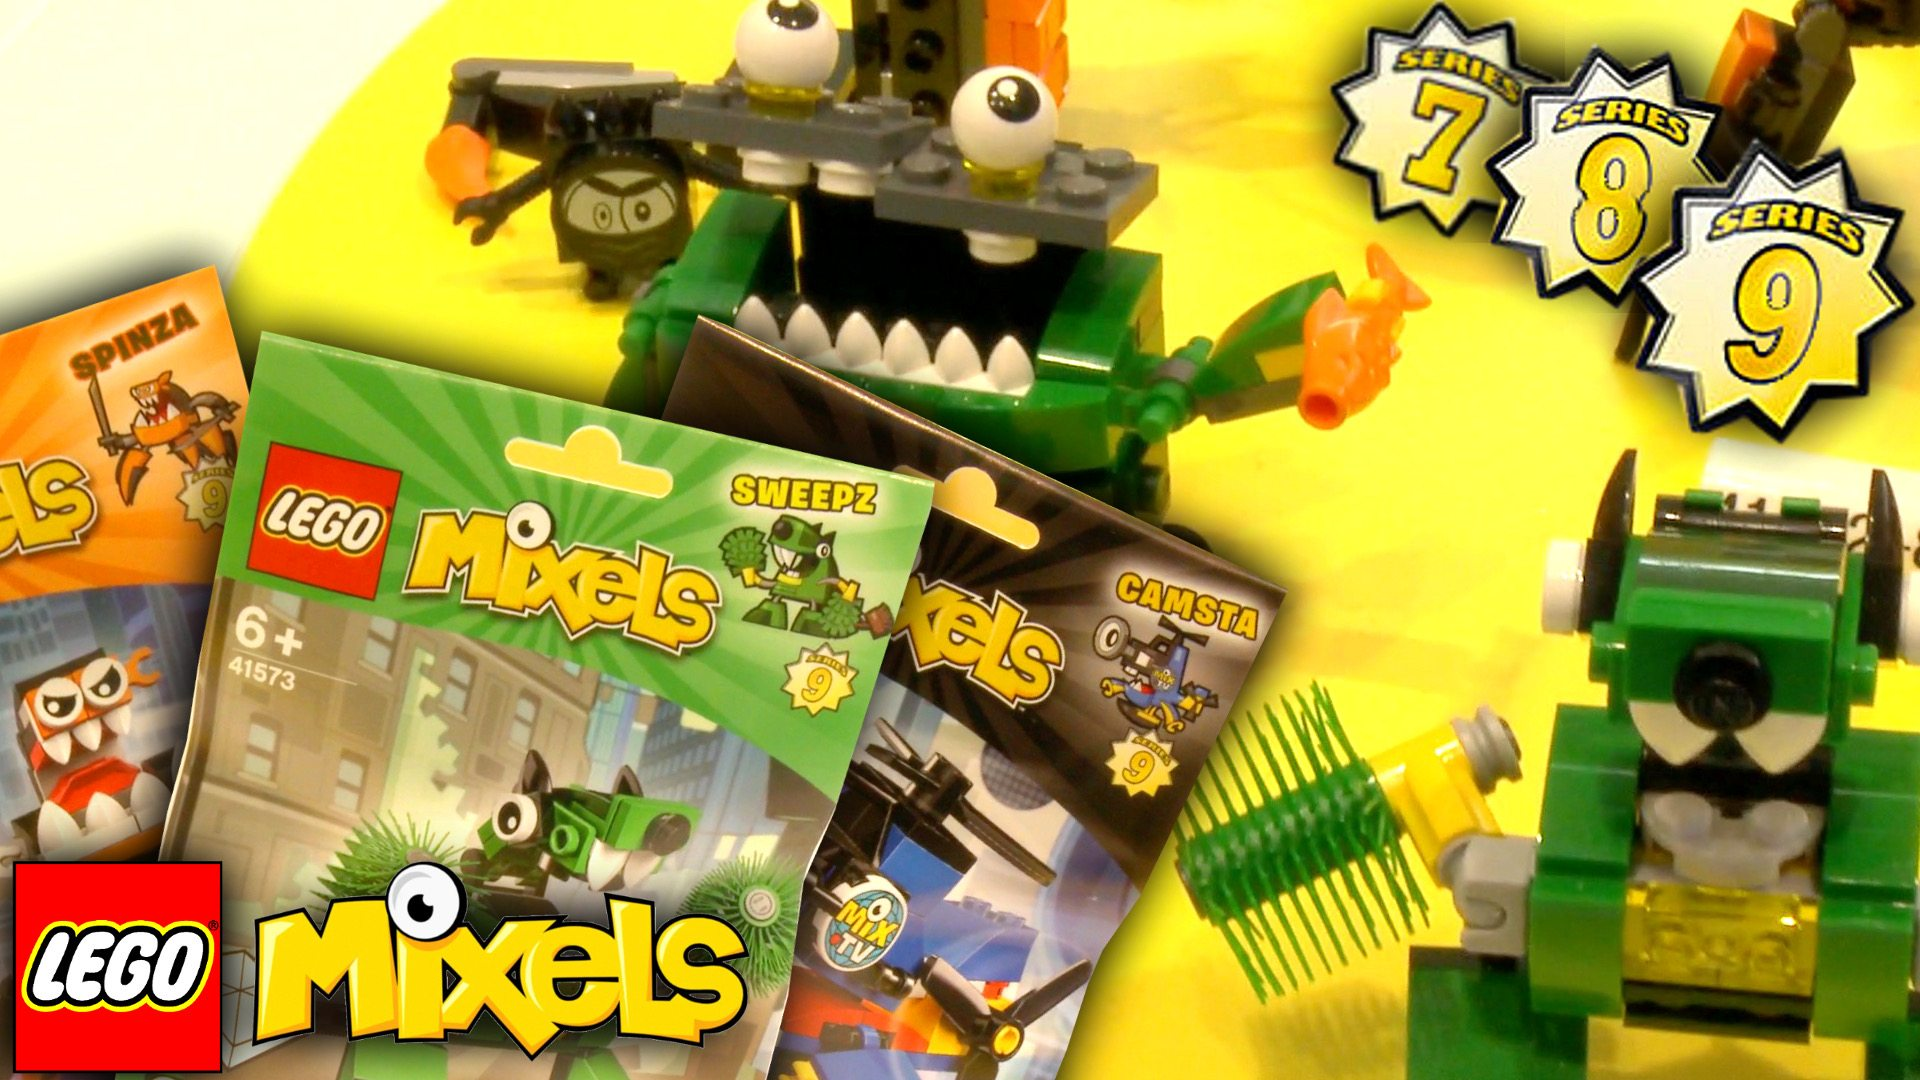 2016 'Lego Mixels' Line-Up Revealed in Full